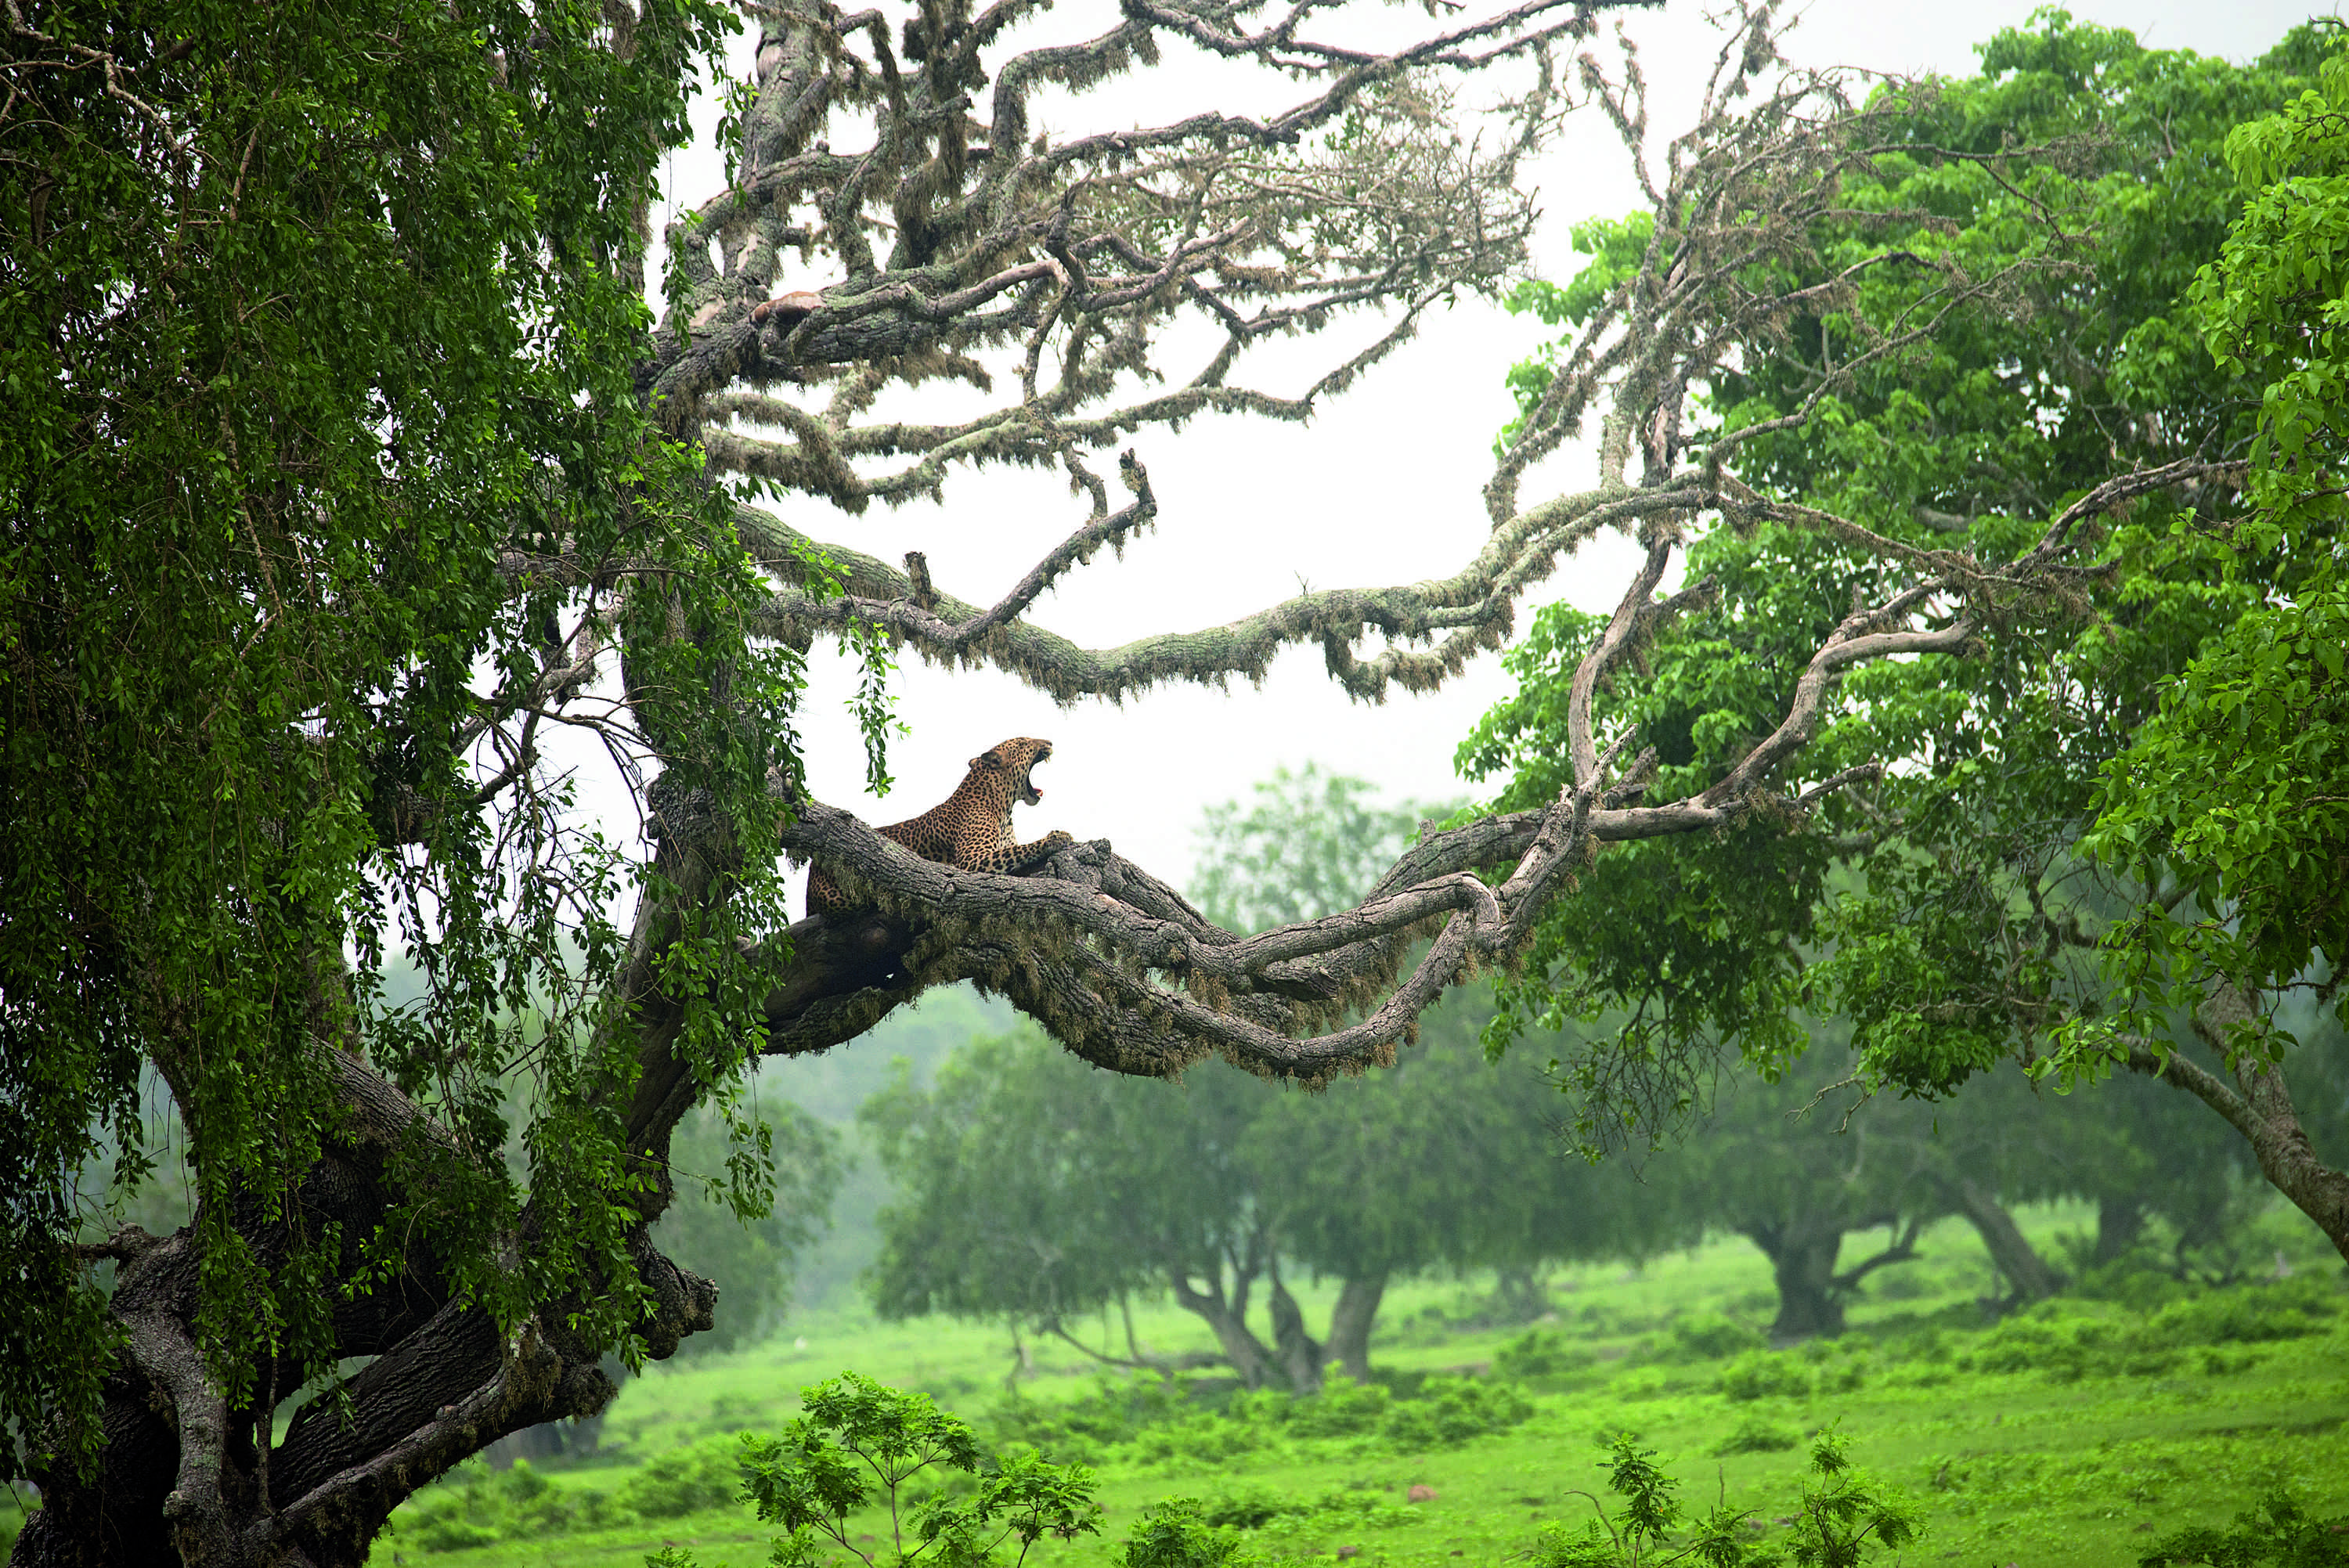 """'At His Leisure' by Pasan Senevirathne shows a leopard awaking from his nap at Sri Lanka's Yala National Park. """"The unparalleled grace of the leopard and the delicate embellishments of moss on the tree make for an image that exudes ease and power,"""" said the Foundation."""